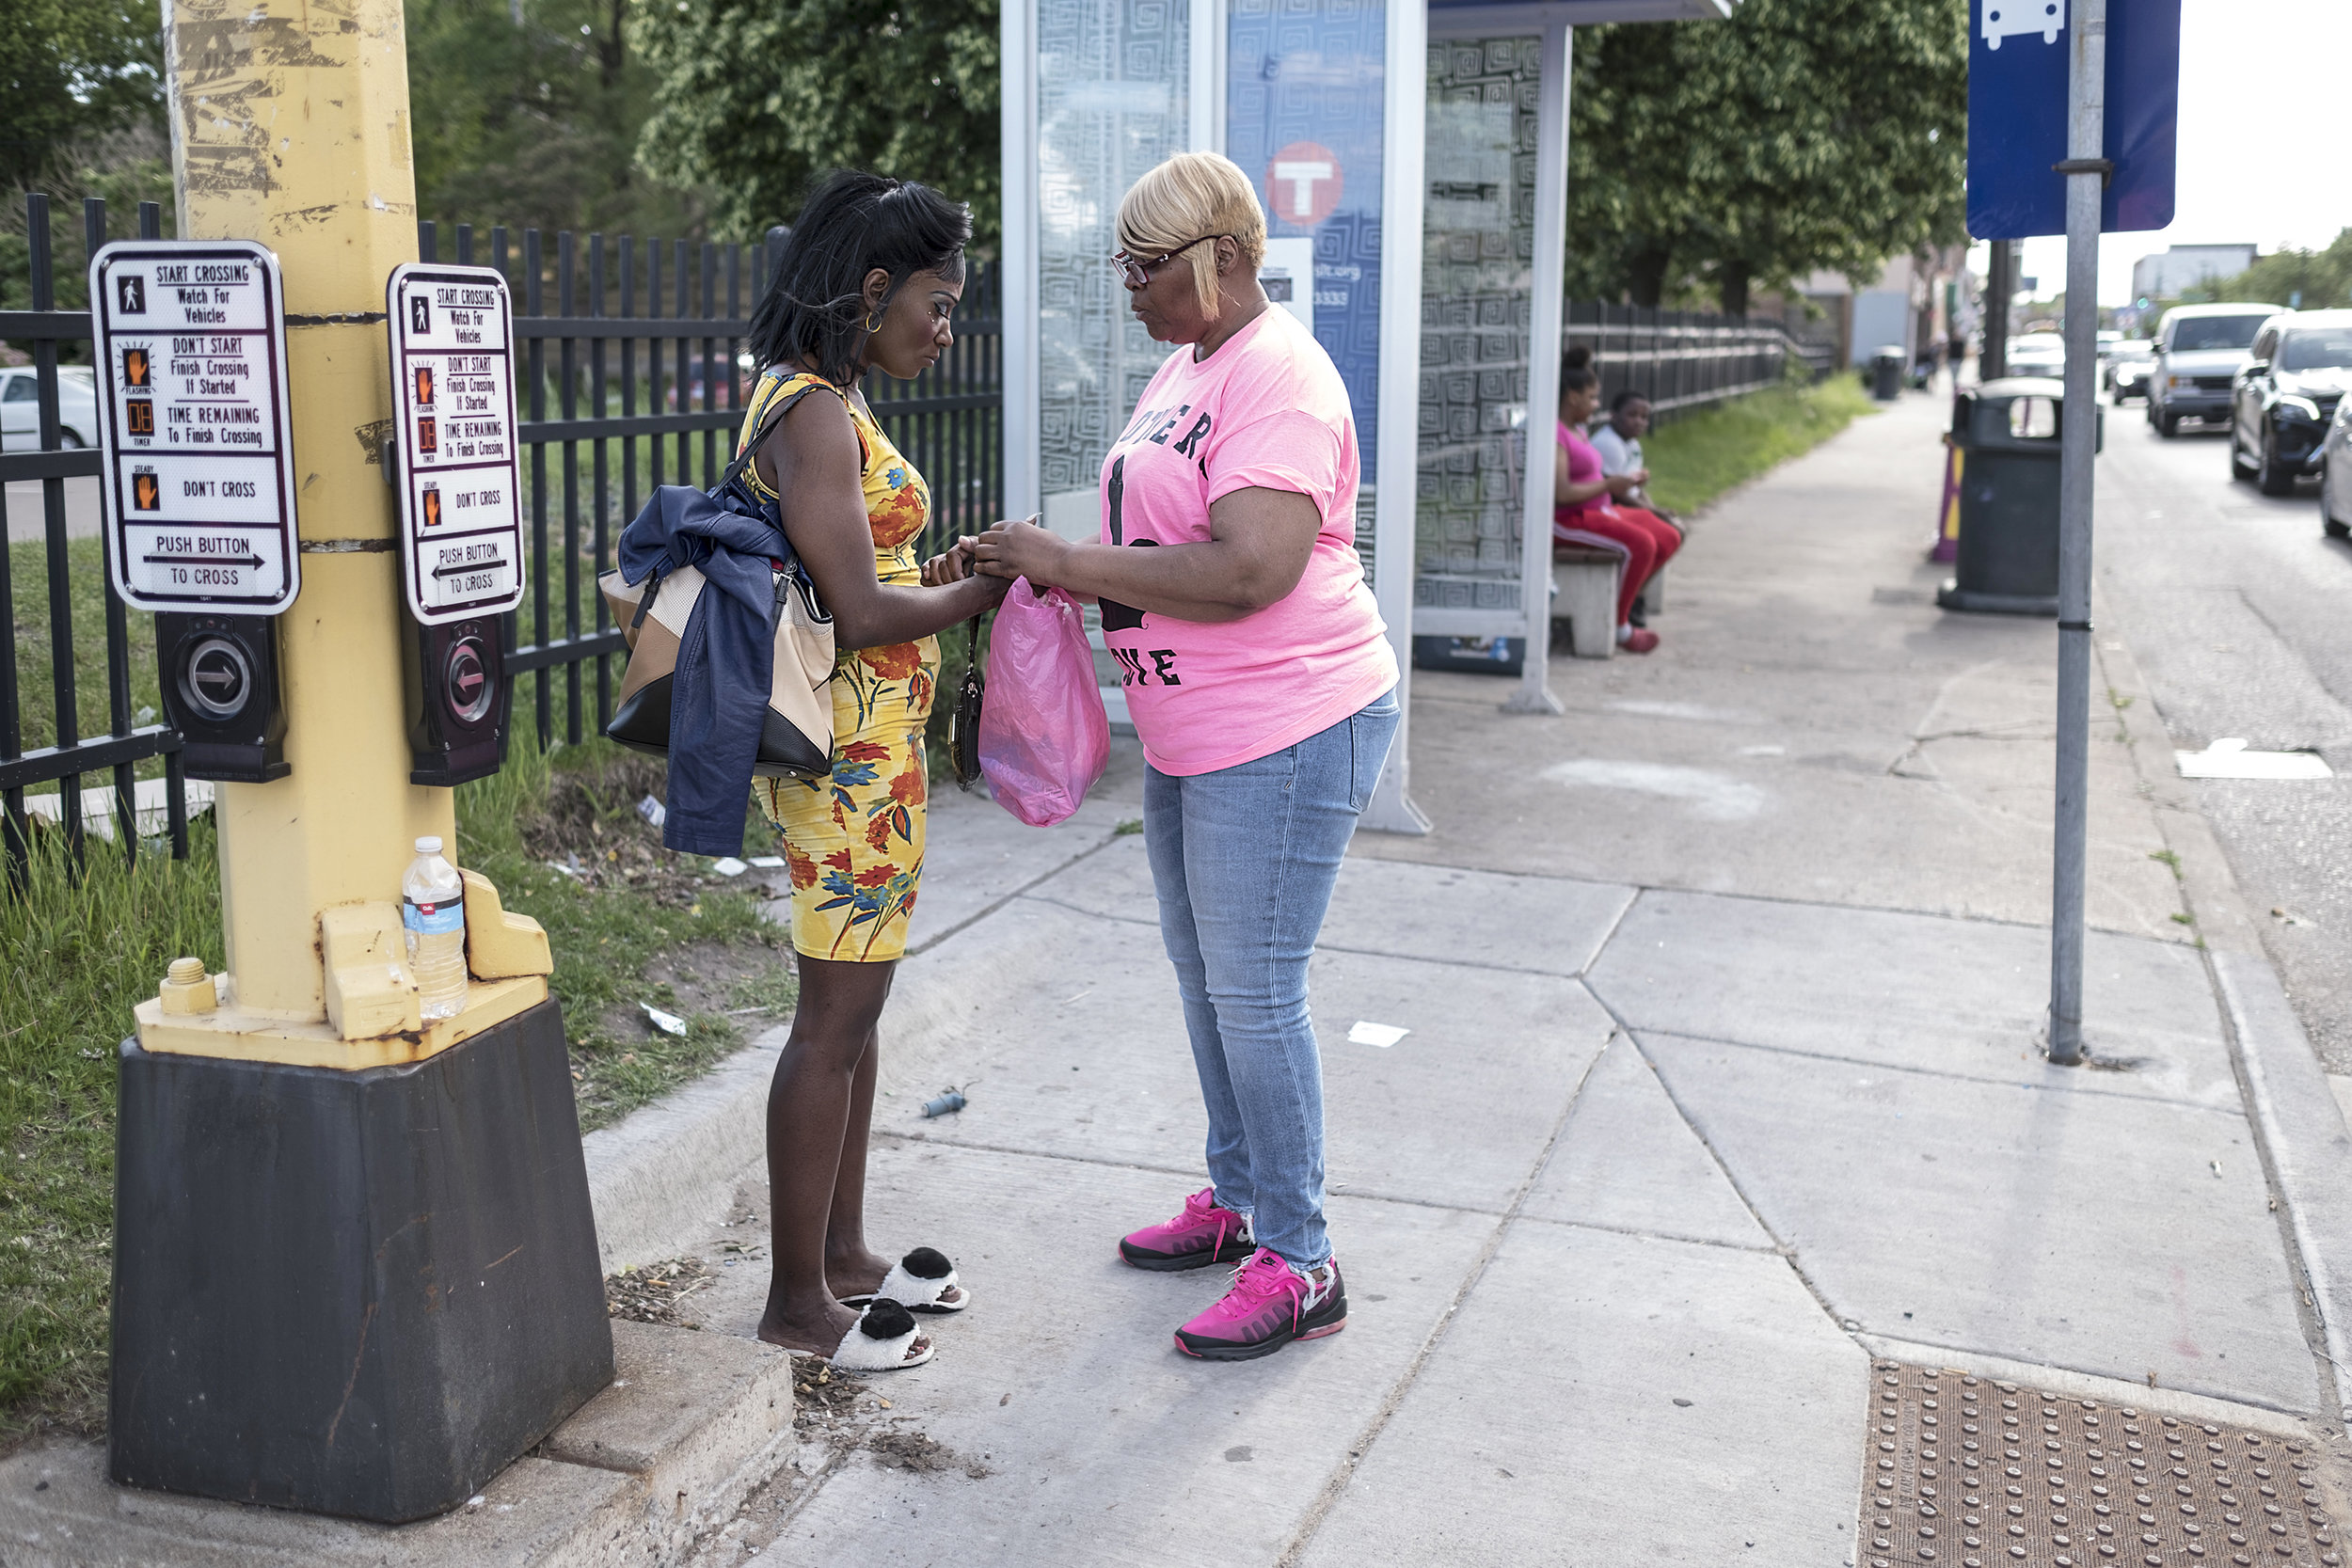 After talking for several minutes, Nona Champion offers to pray with a woman she met near a bus stop on W Broadway Ave.